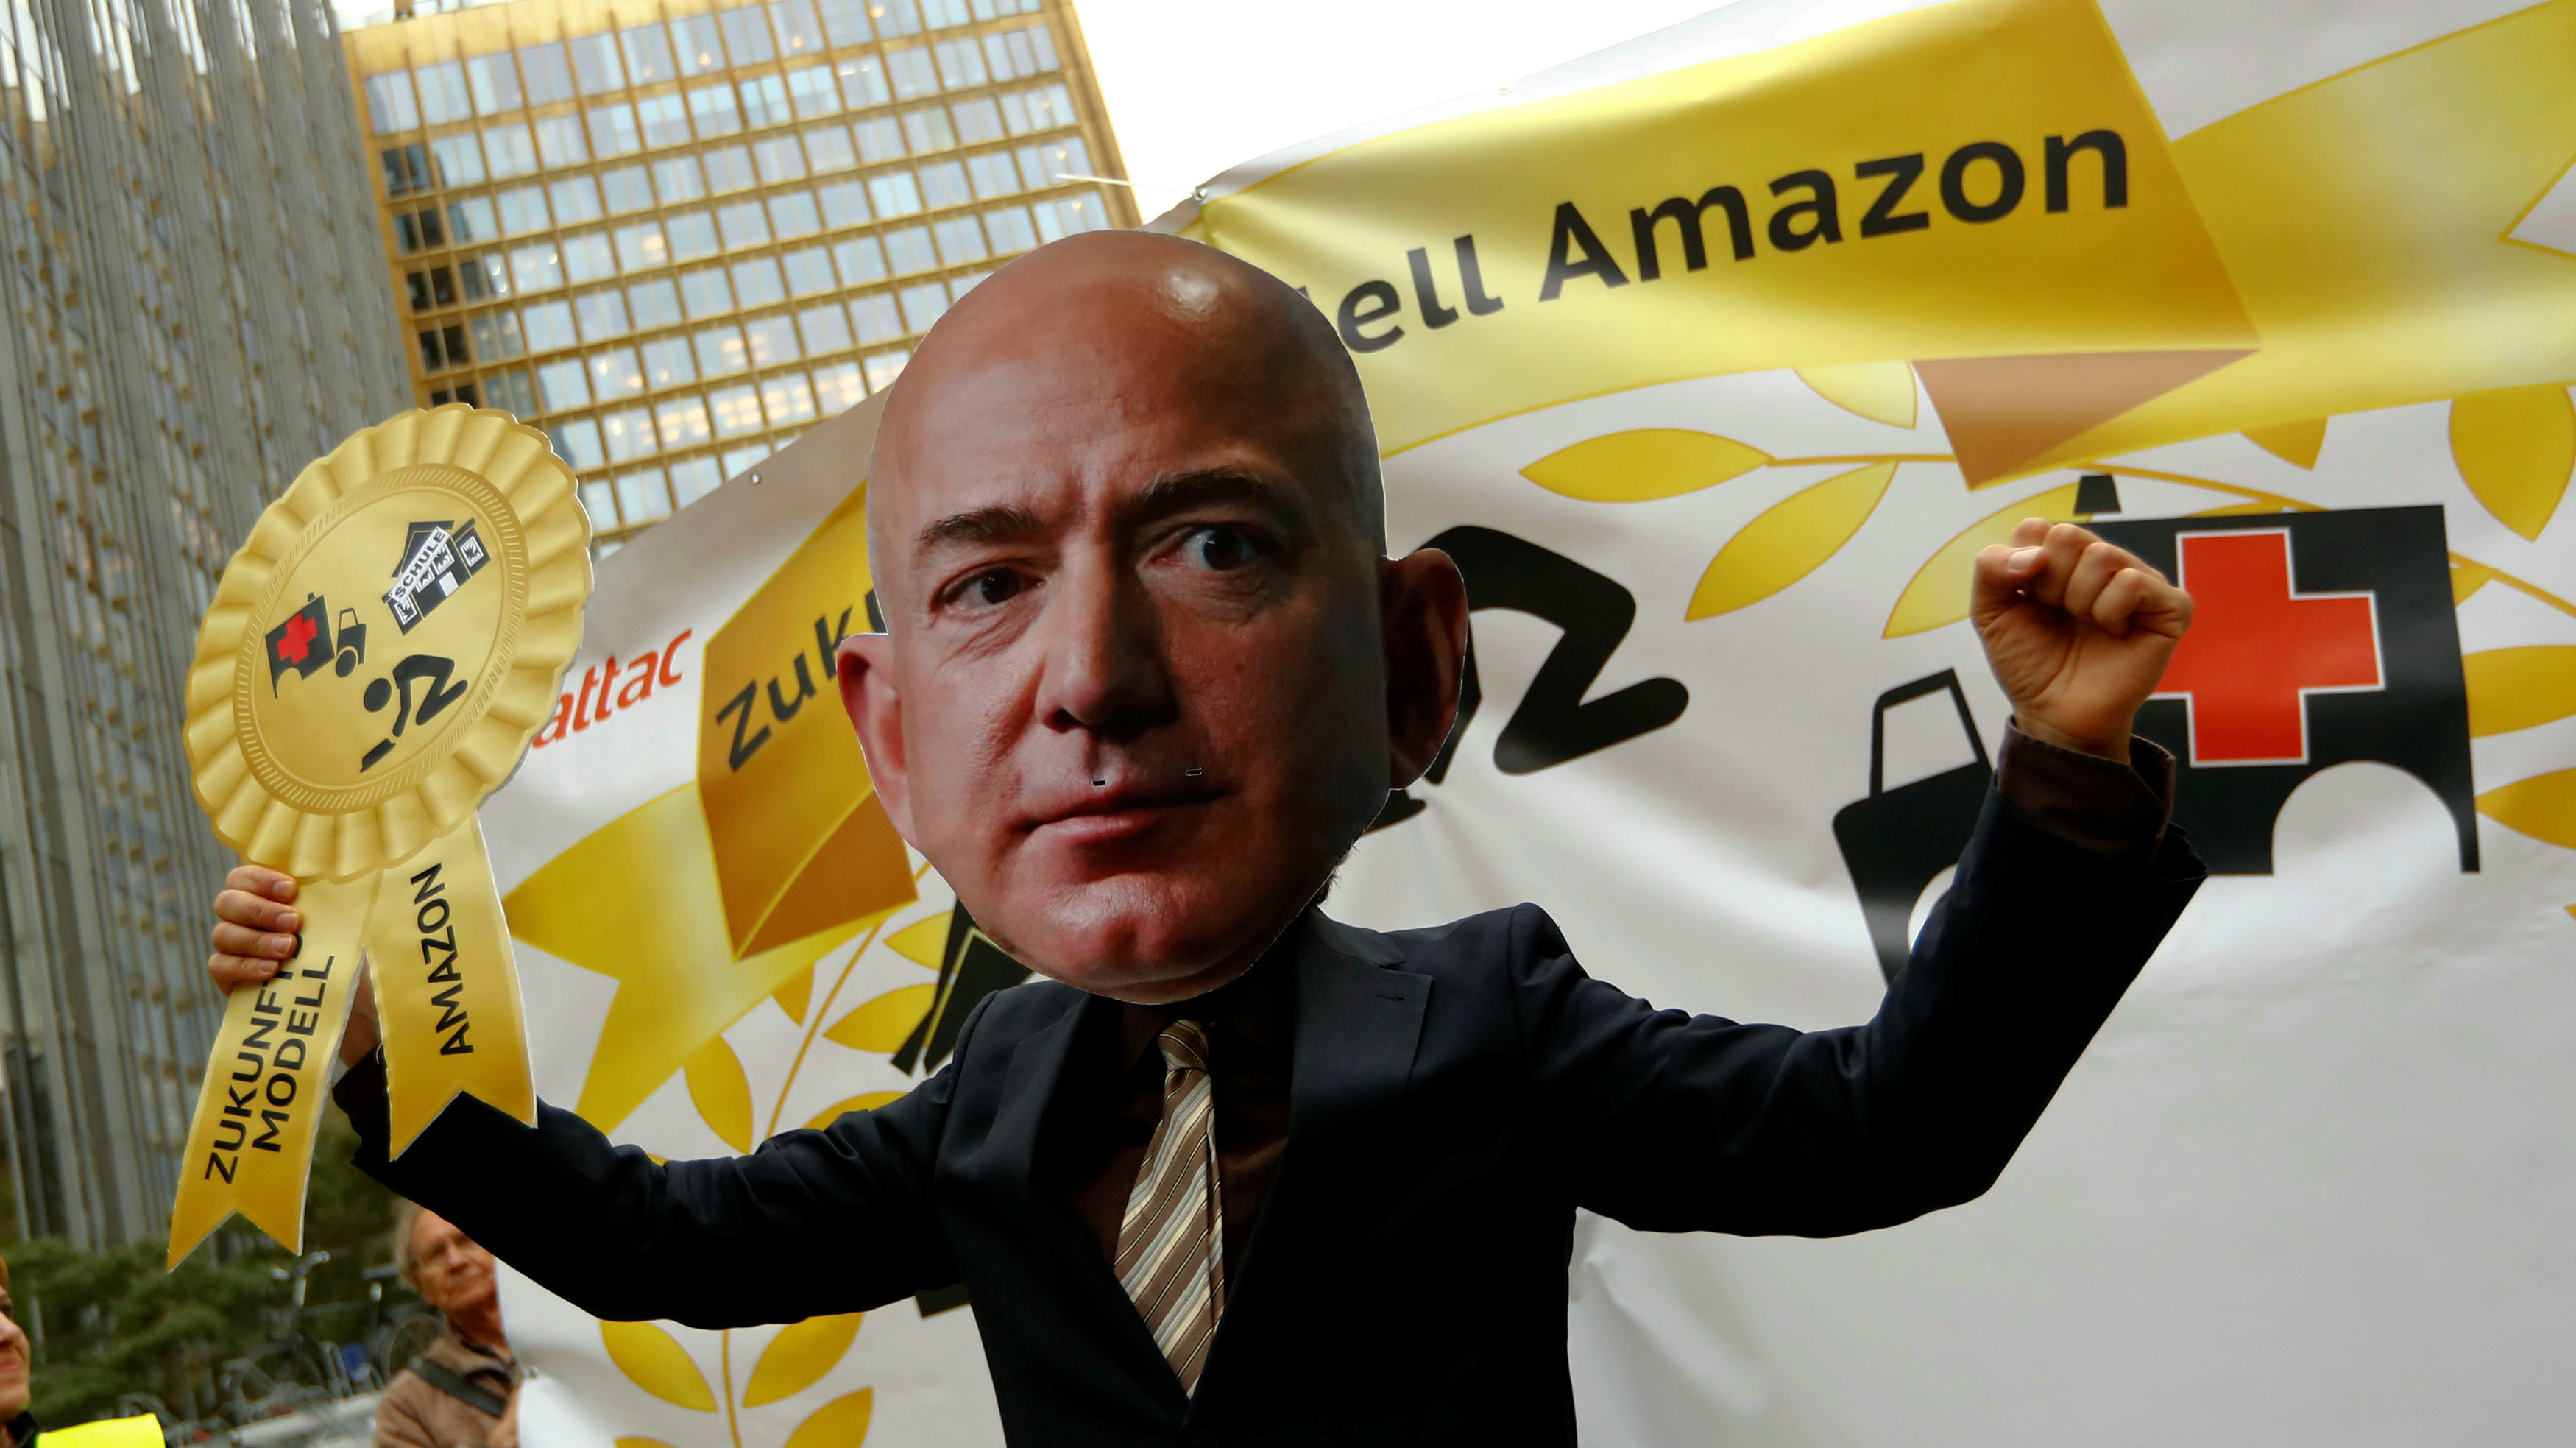 Amazon - Big profits coming